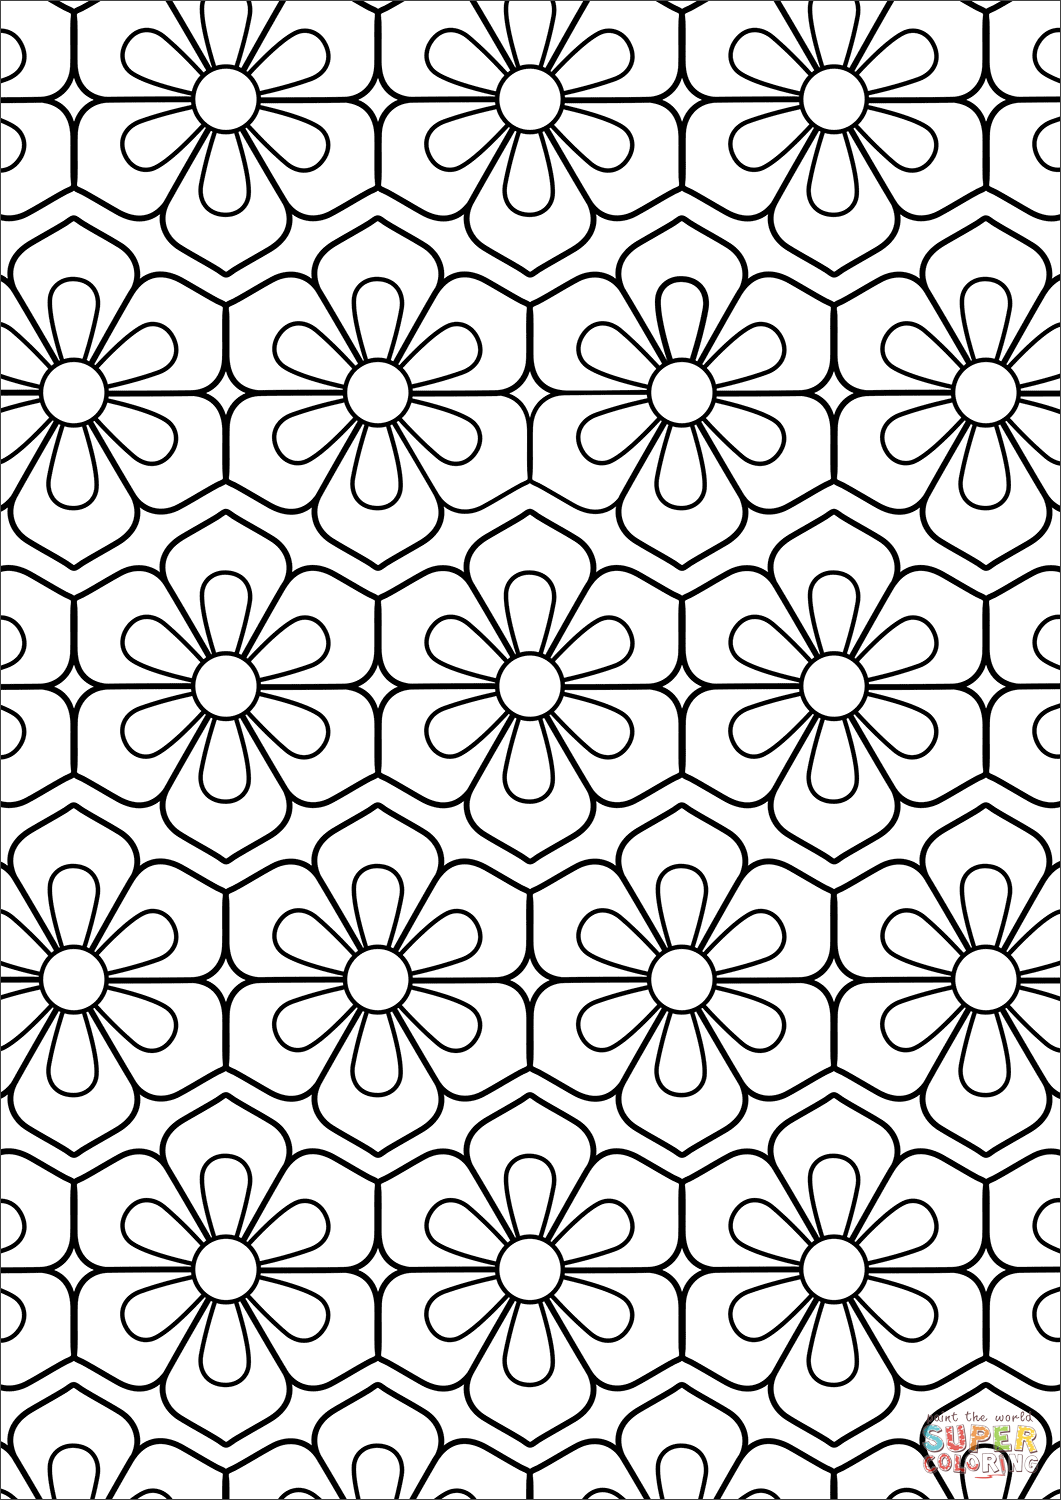 printable pattern coloring pages don39t eat the paste pattern and mandala coloring page pages pattern coloring printable